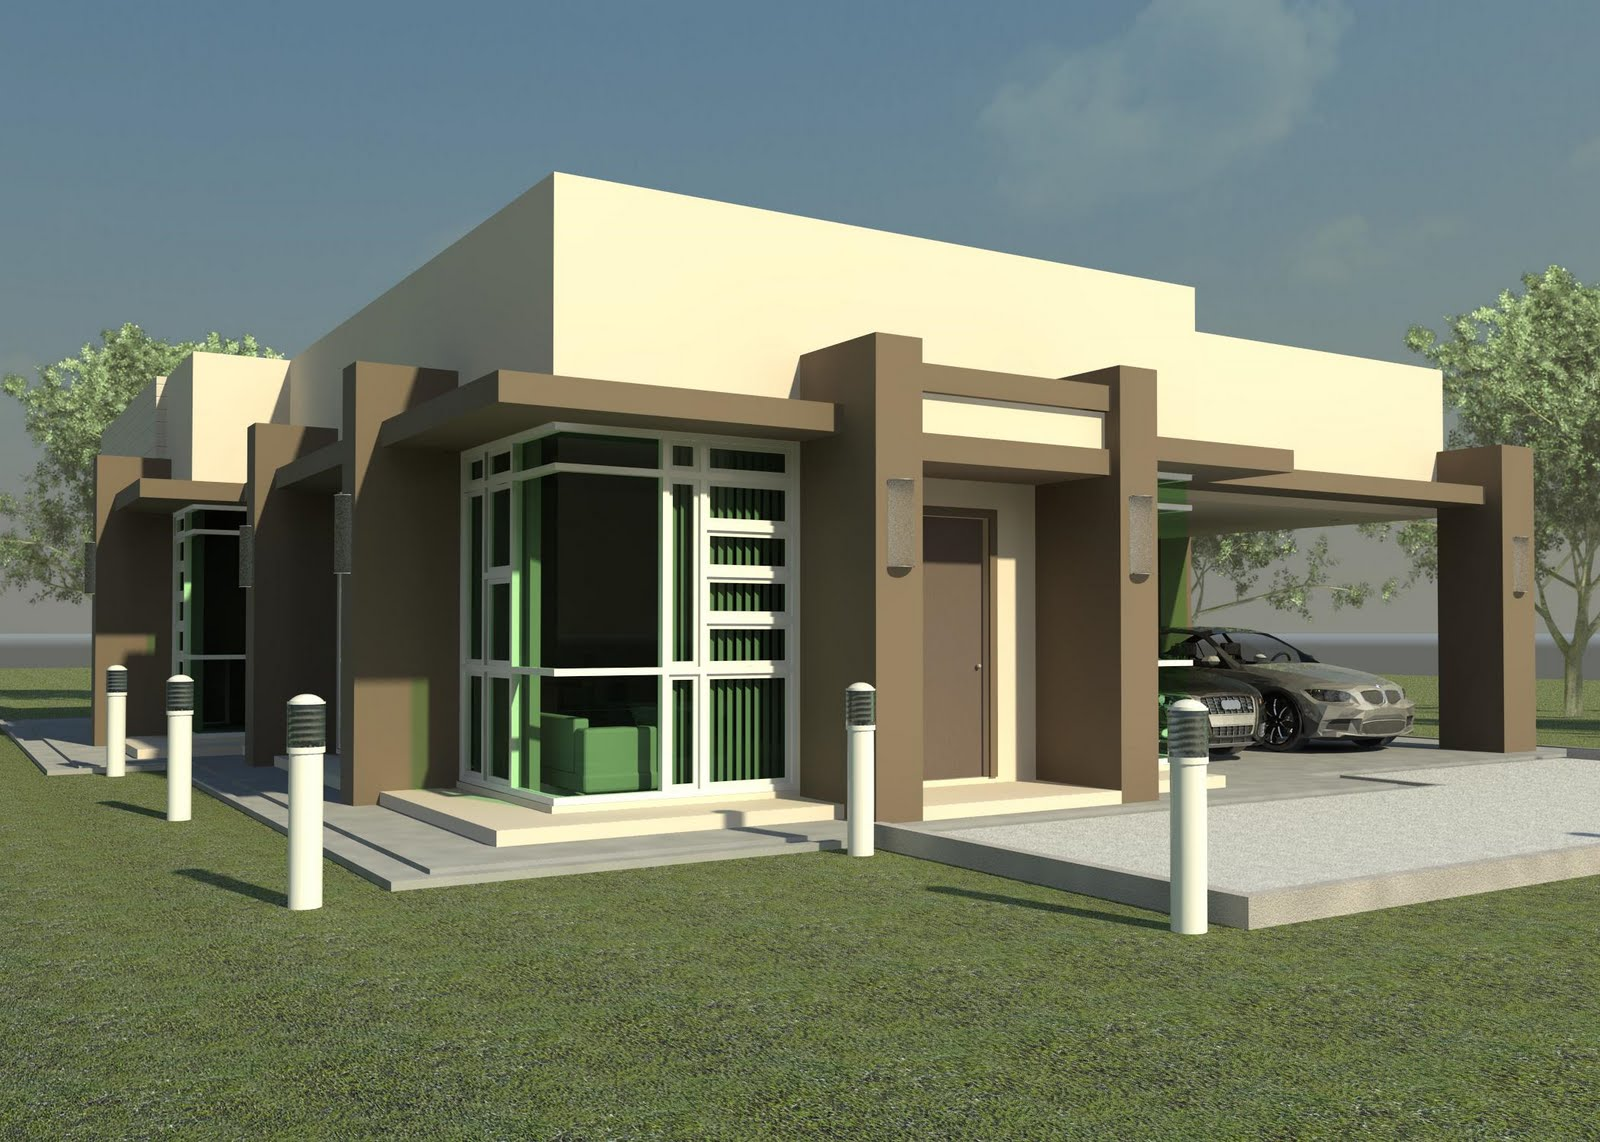 New home designs latest modern small homes designs exterior for Design your home exterior